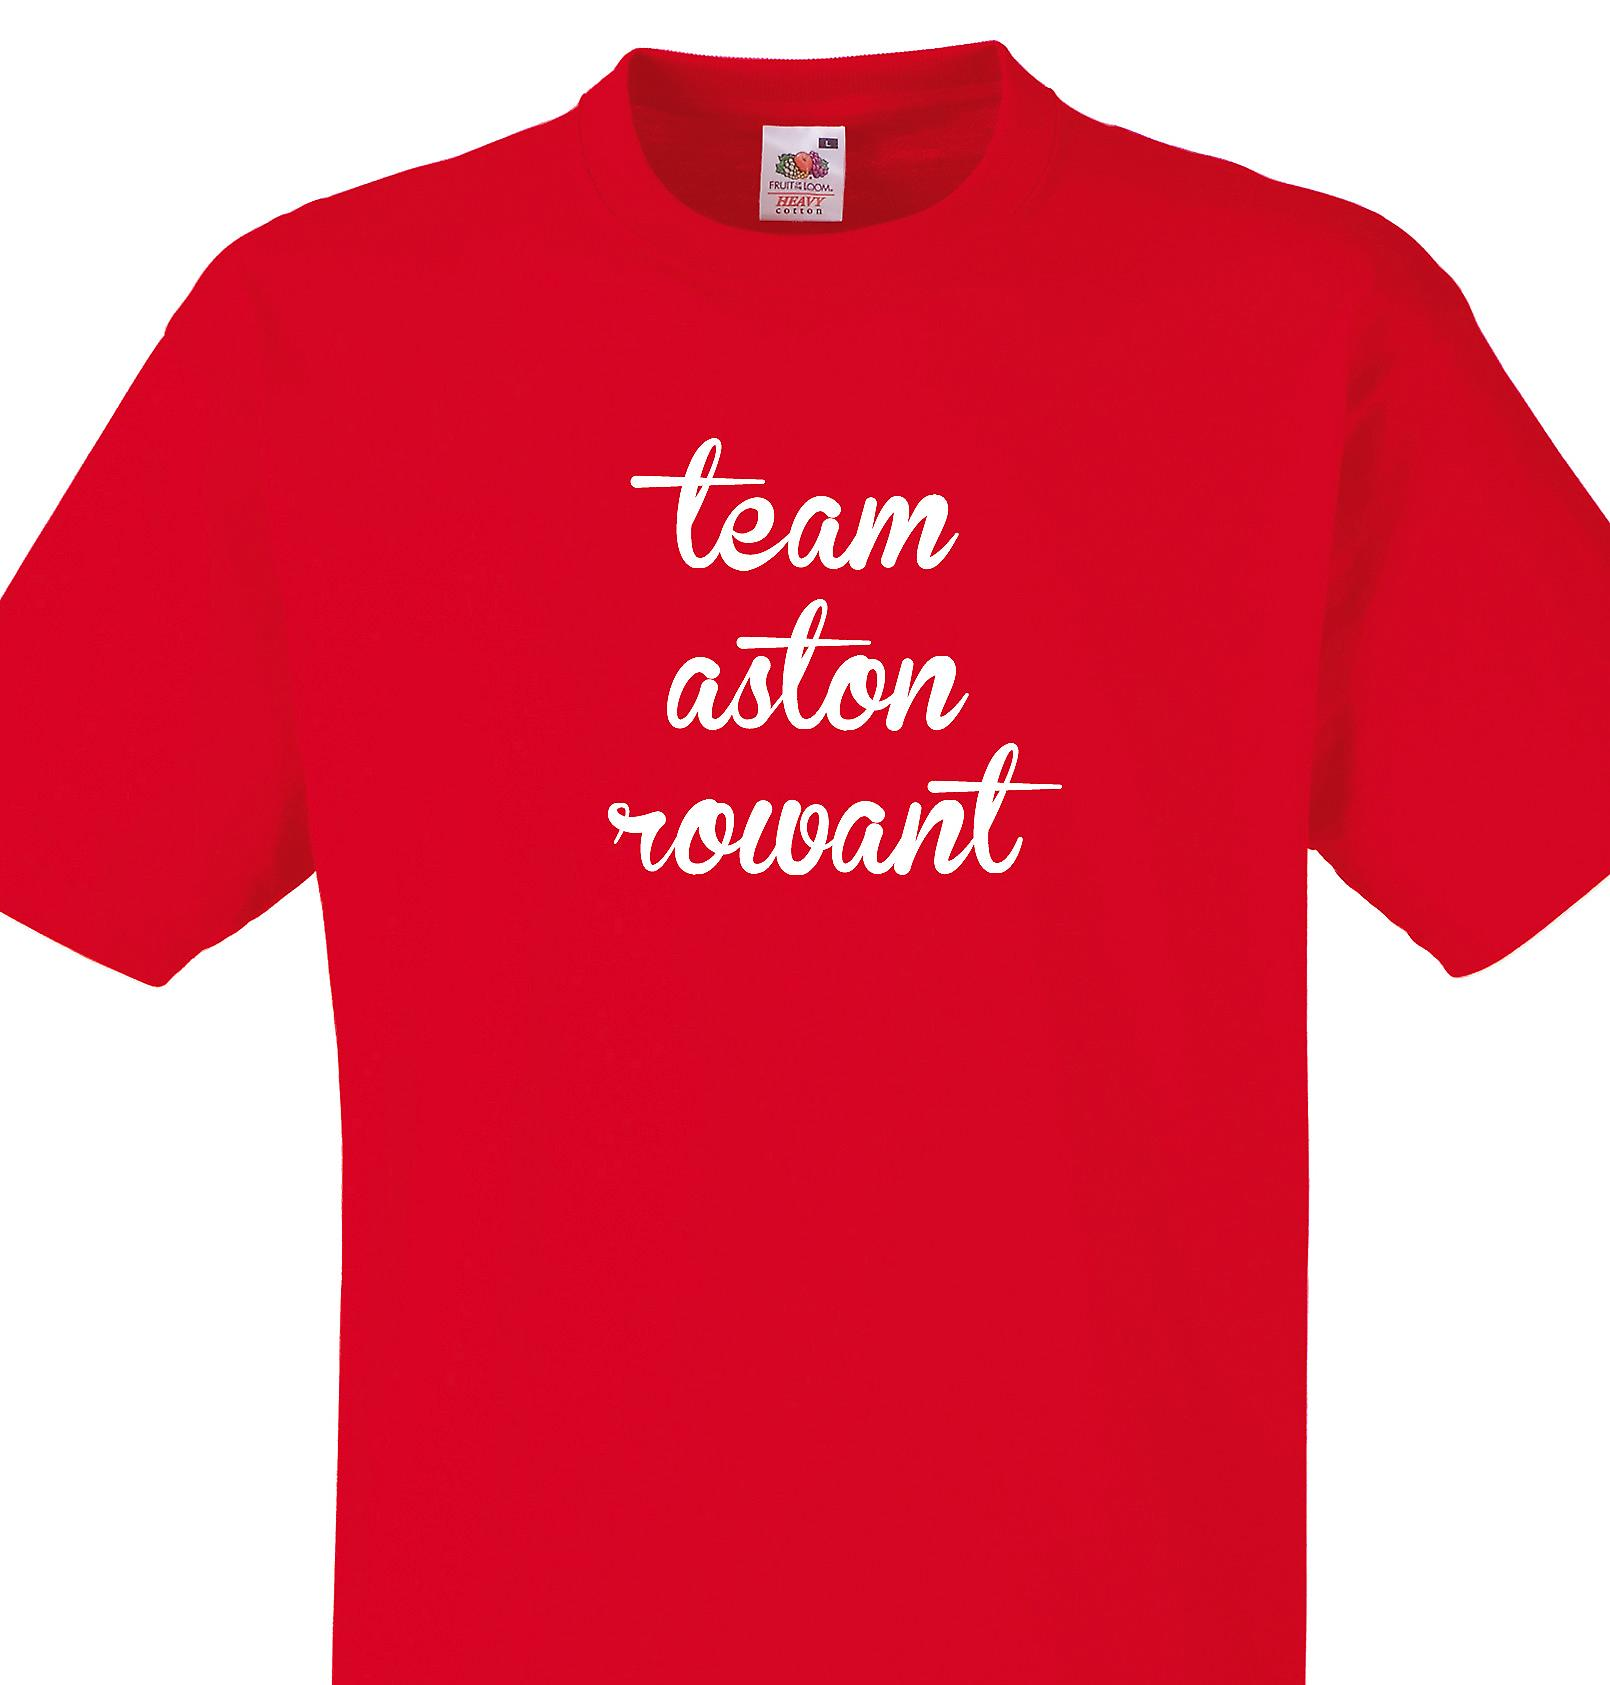 Team Aston rowant Red T shirt